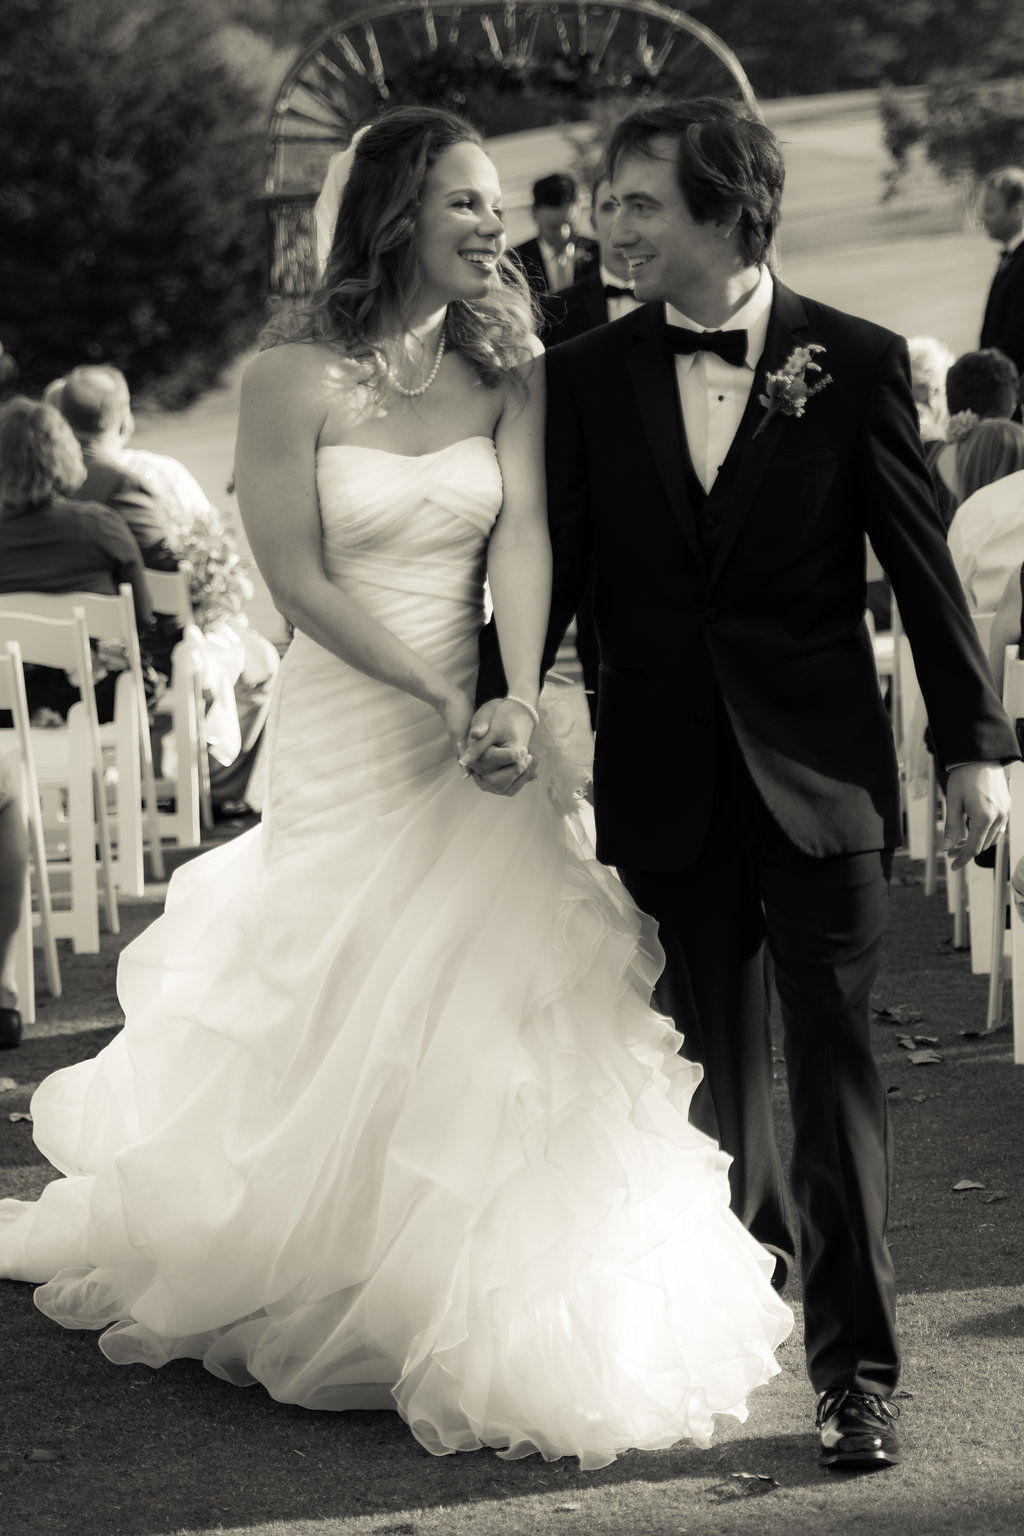 Black and White of Bride and Groom just married at Pilot Knob Country Club. Wedding Photography by Party of Two Photography.